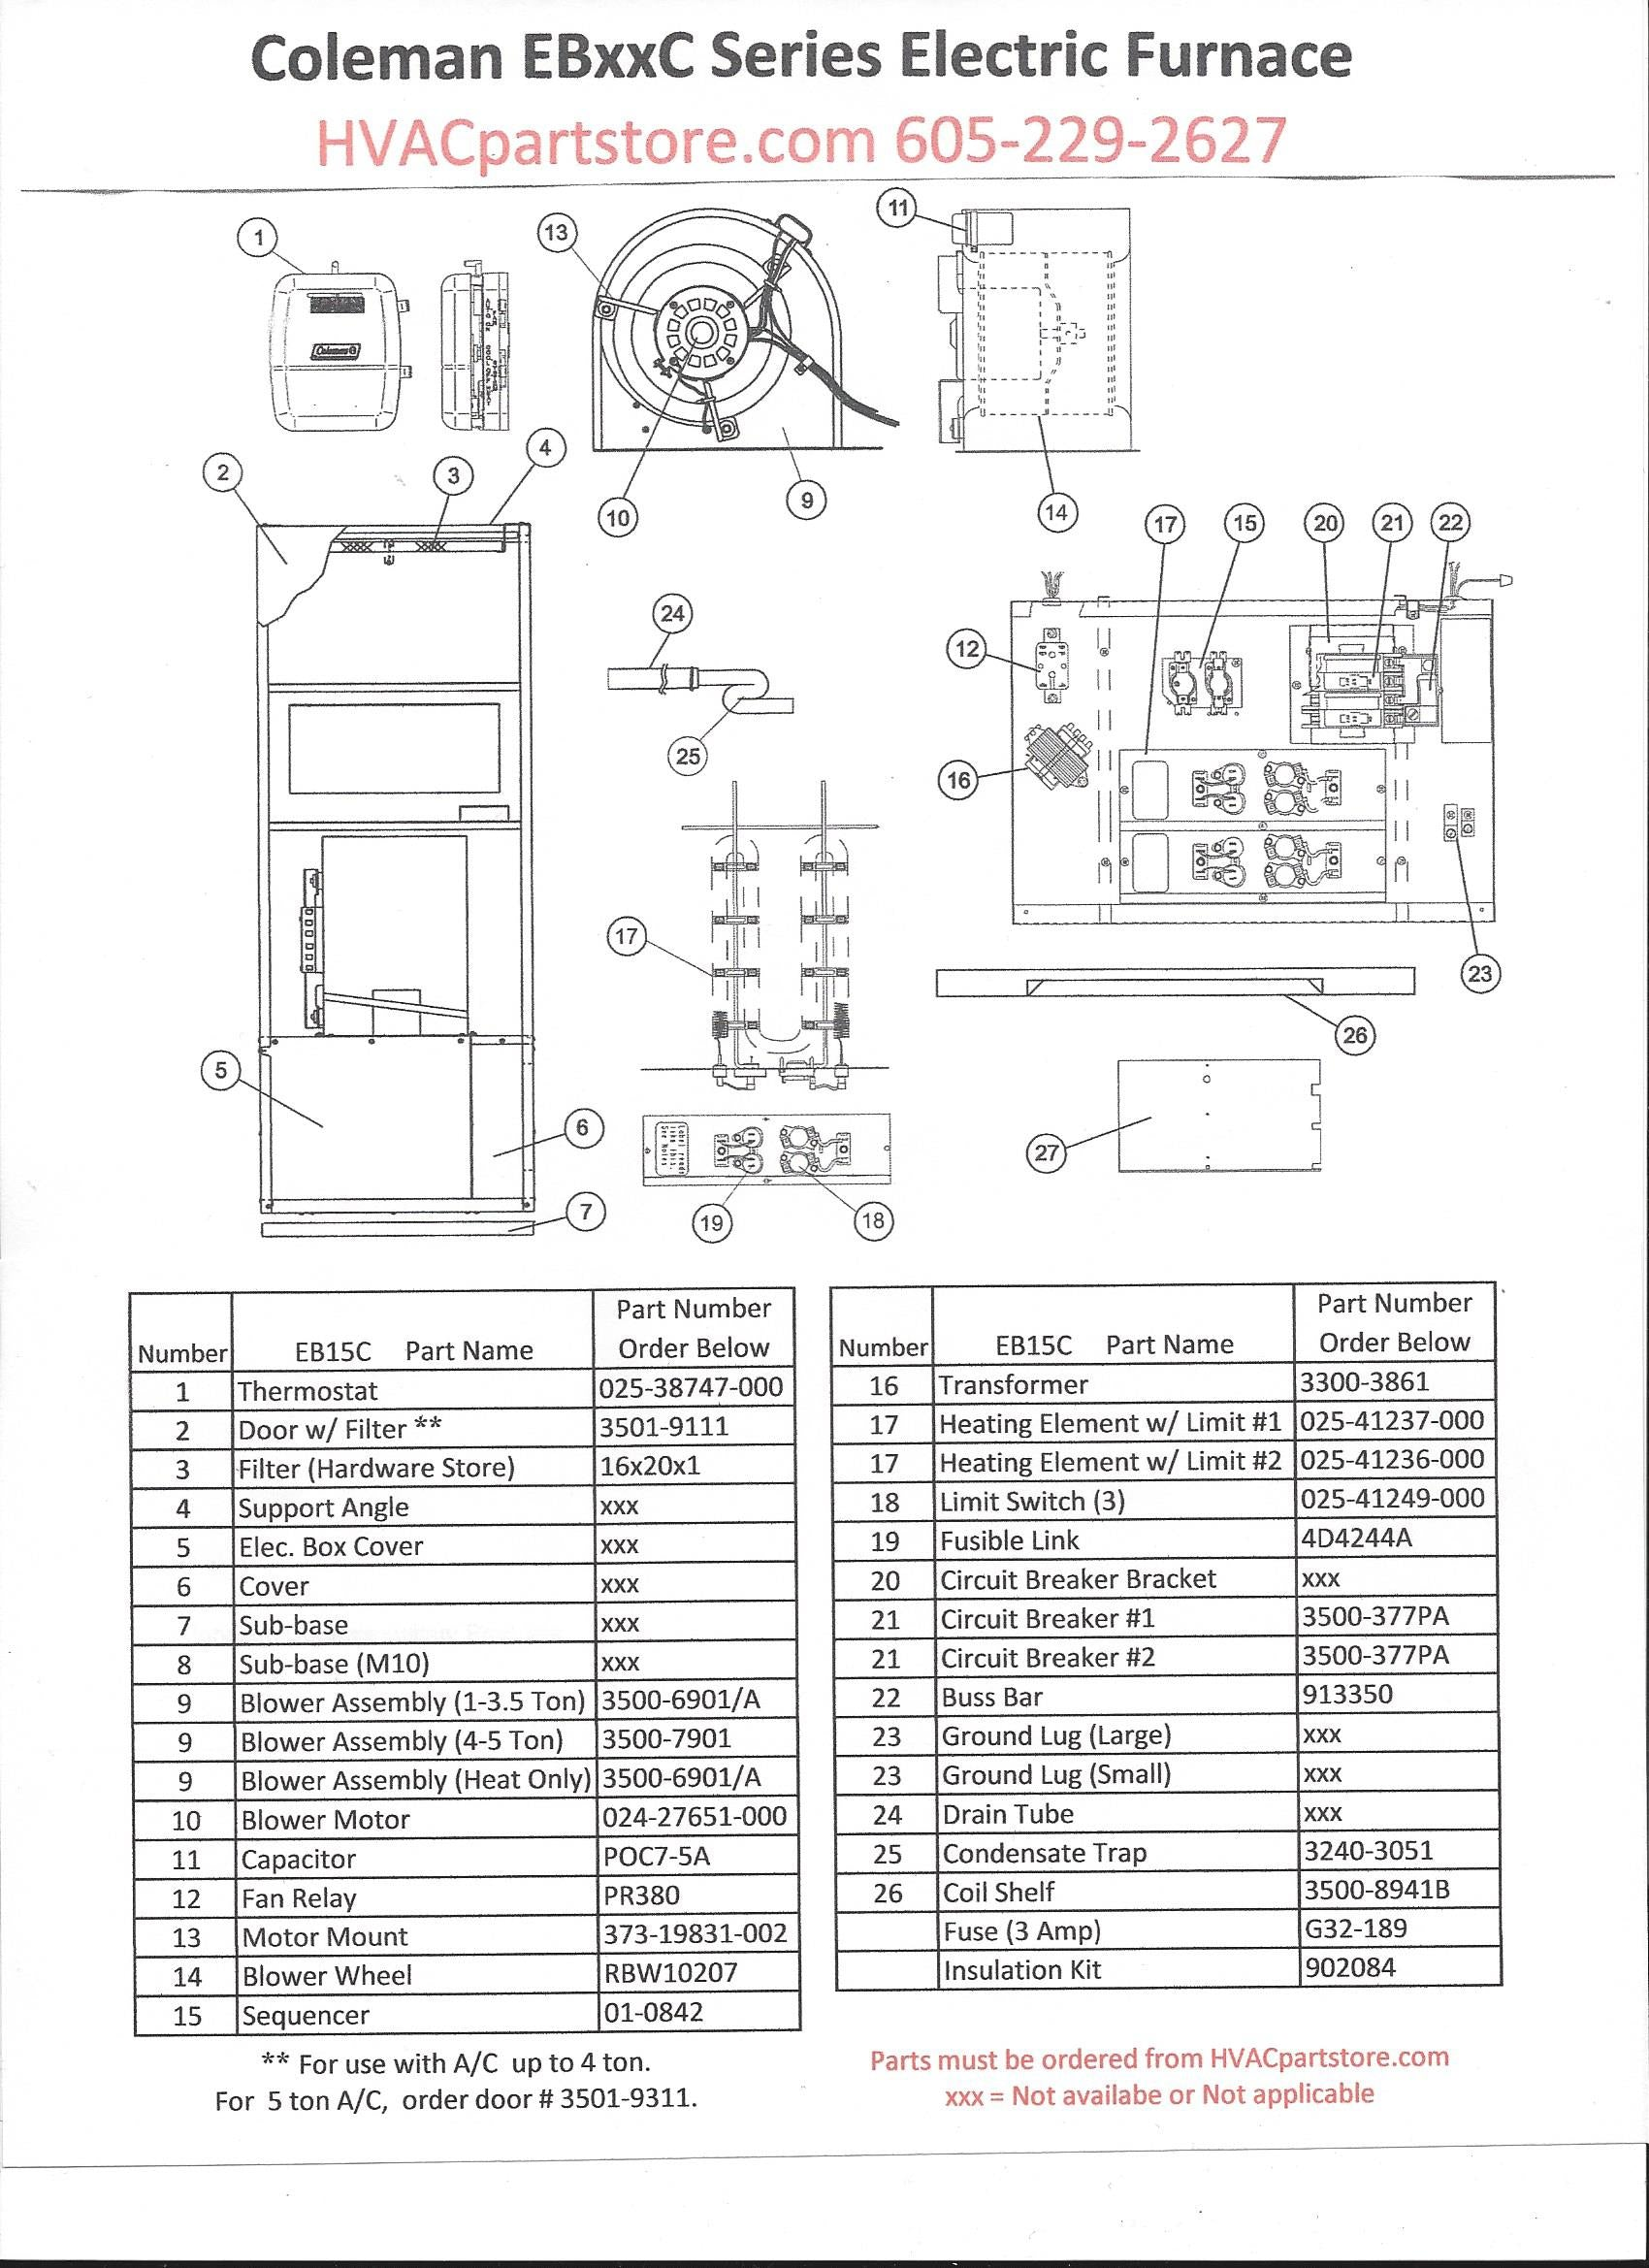 eb15c coleman electric furnace parts hvacpartstore click here to view wiring diagrams